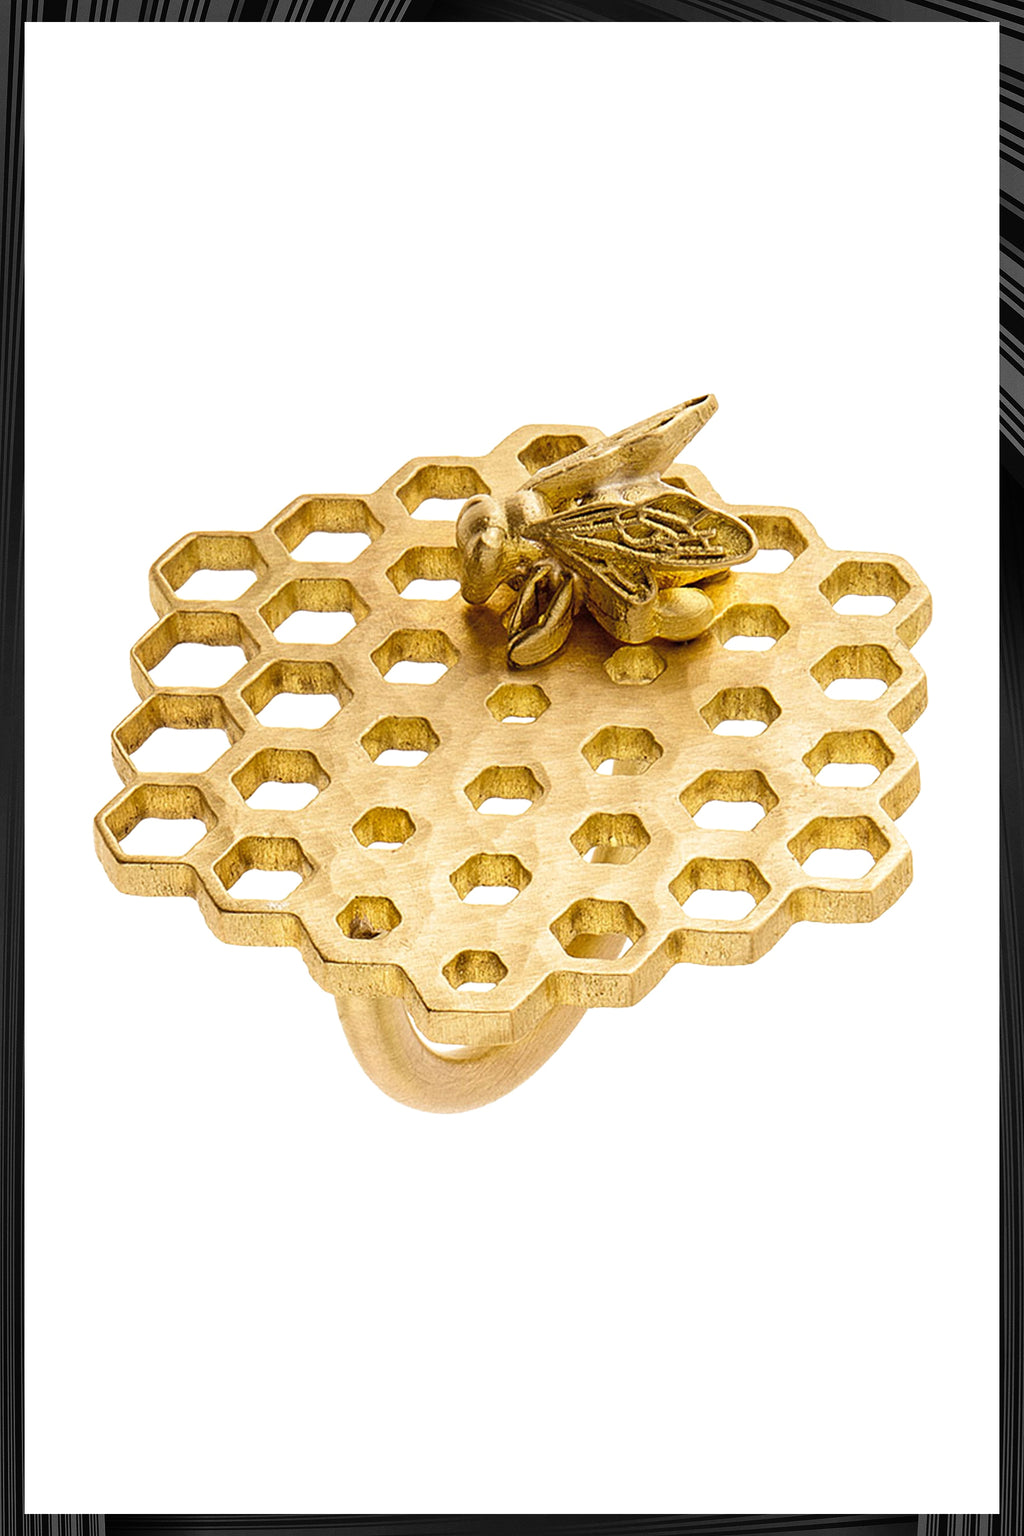 Honey Comb Ring | Free Delivery - Quick Shipping